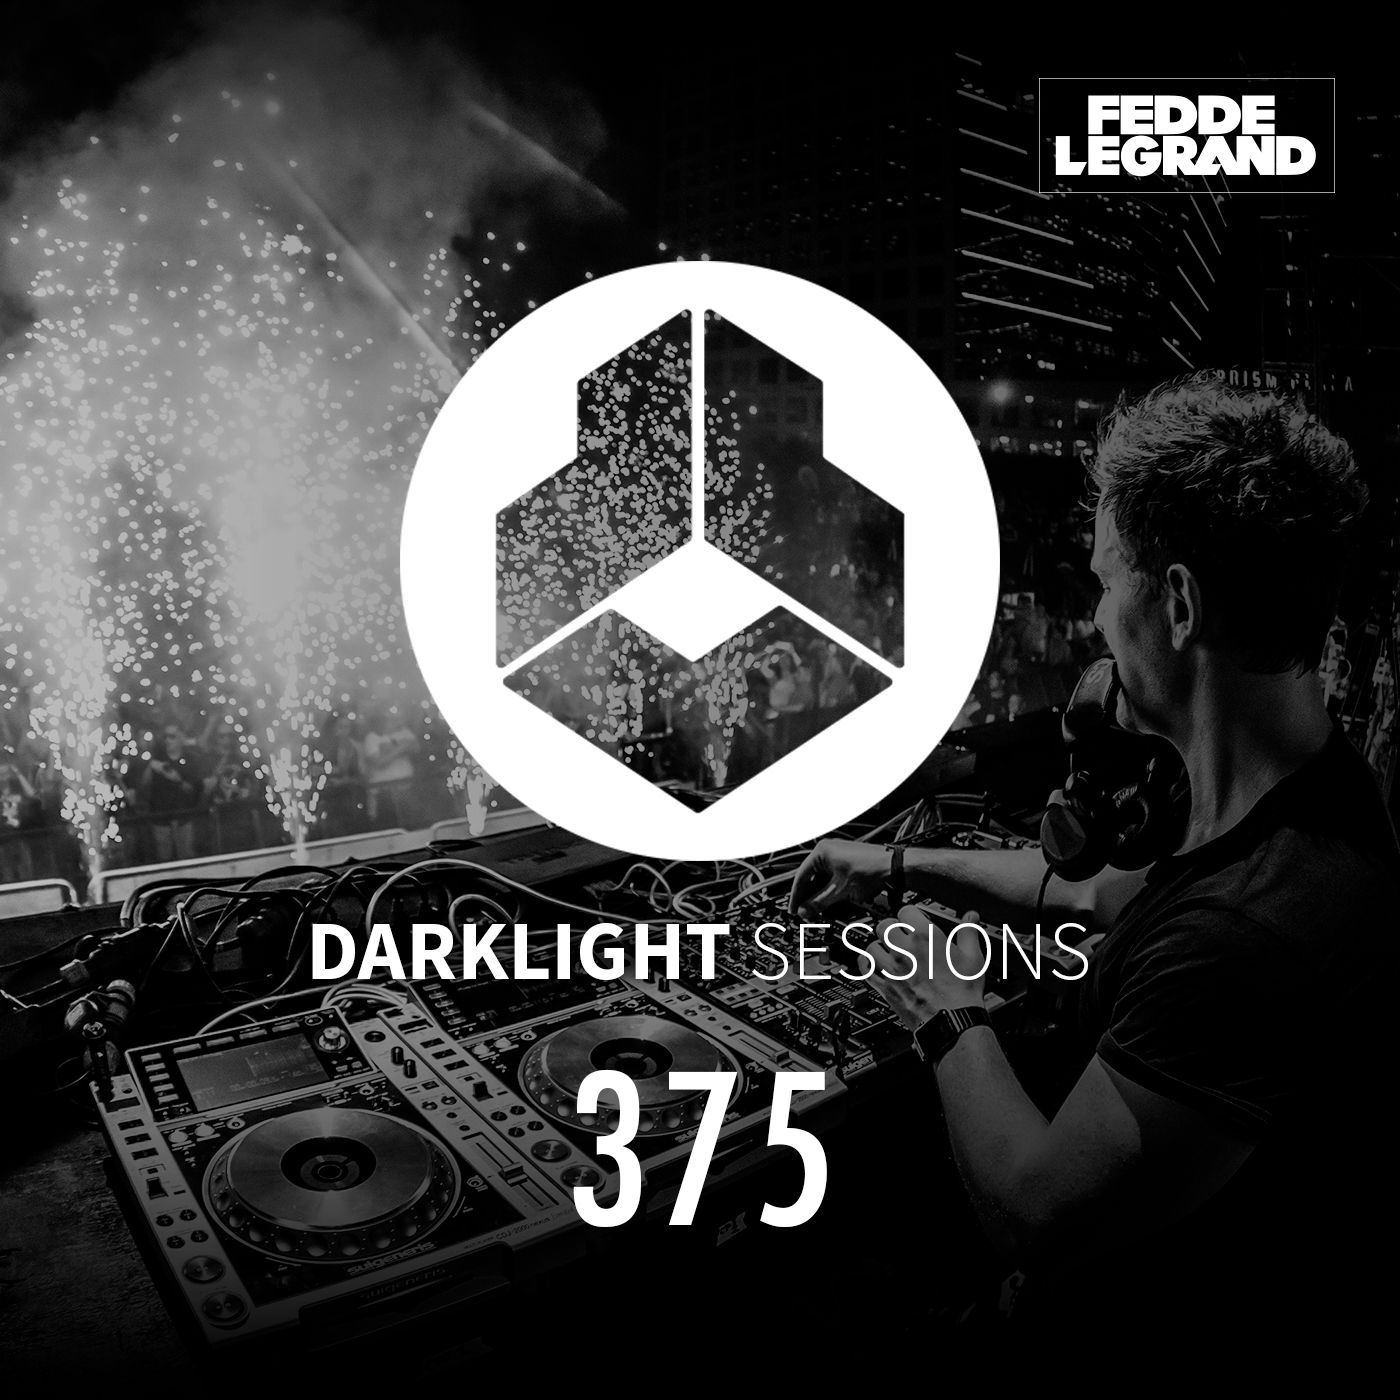 Darklight Sessions 375